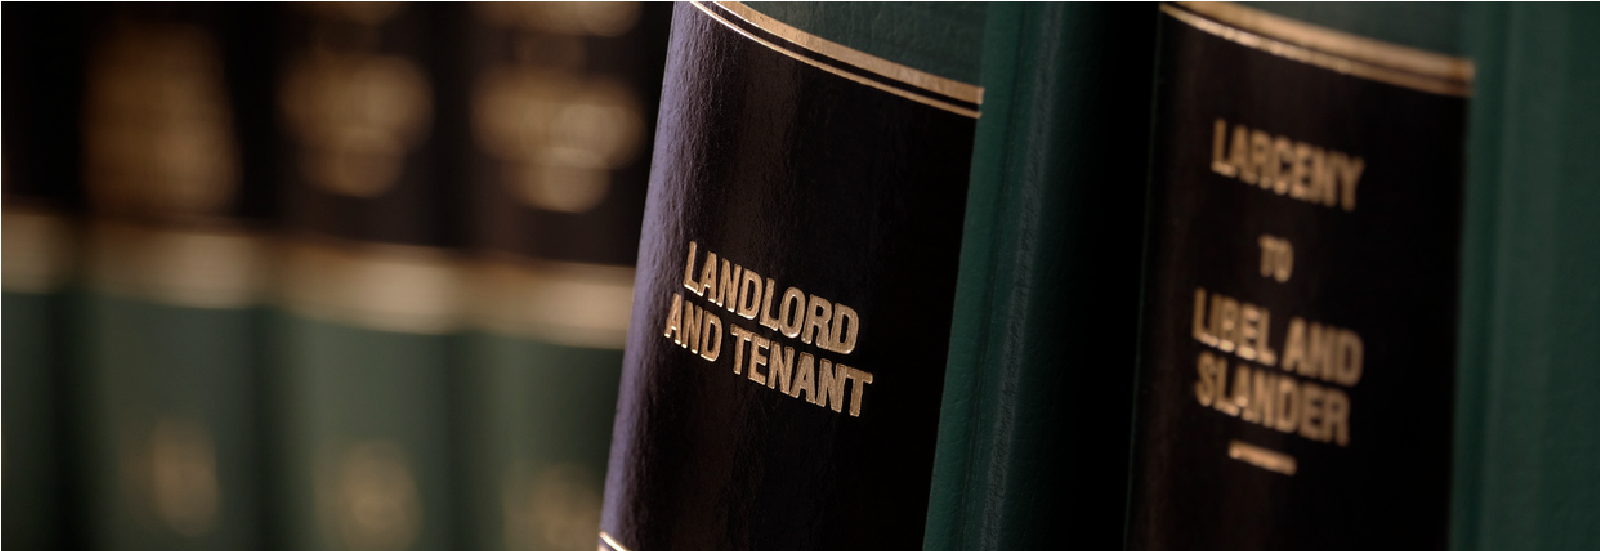 Moving Out and the Landlord Tenant Law